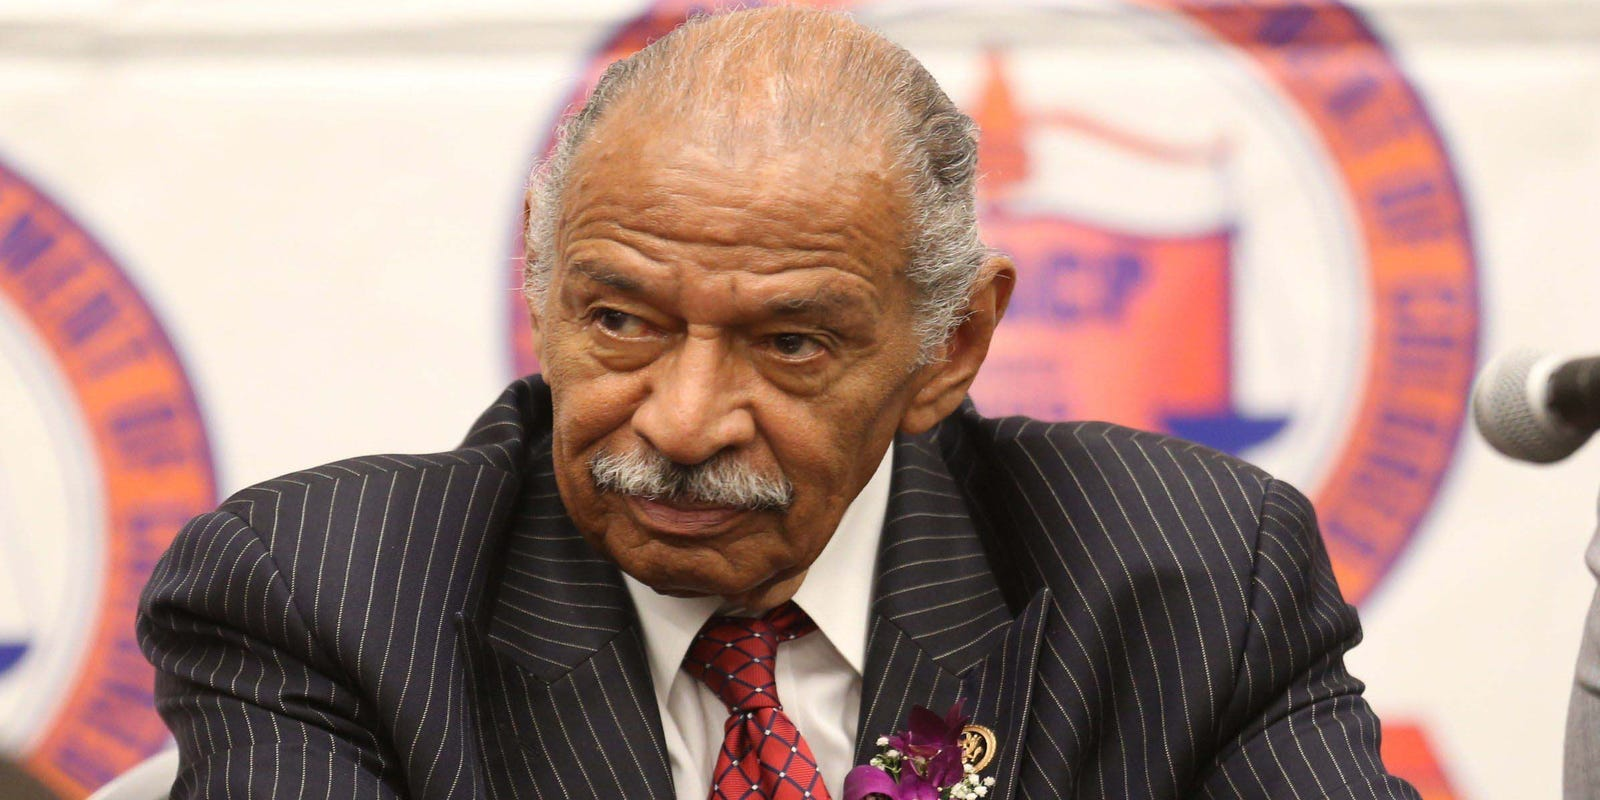 Image result for john conyers congressman